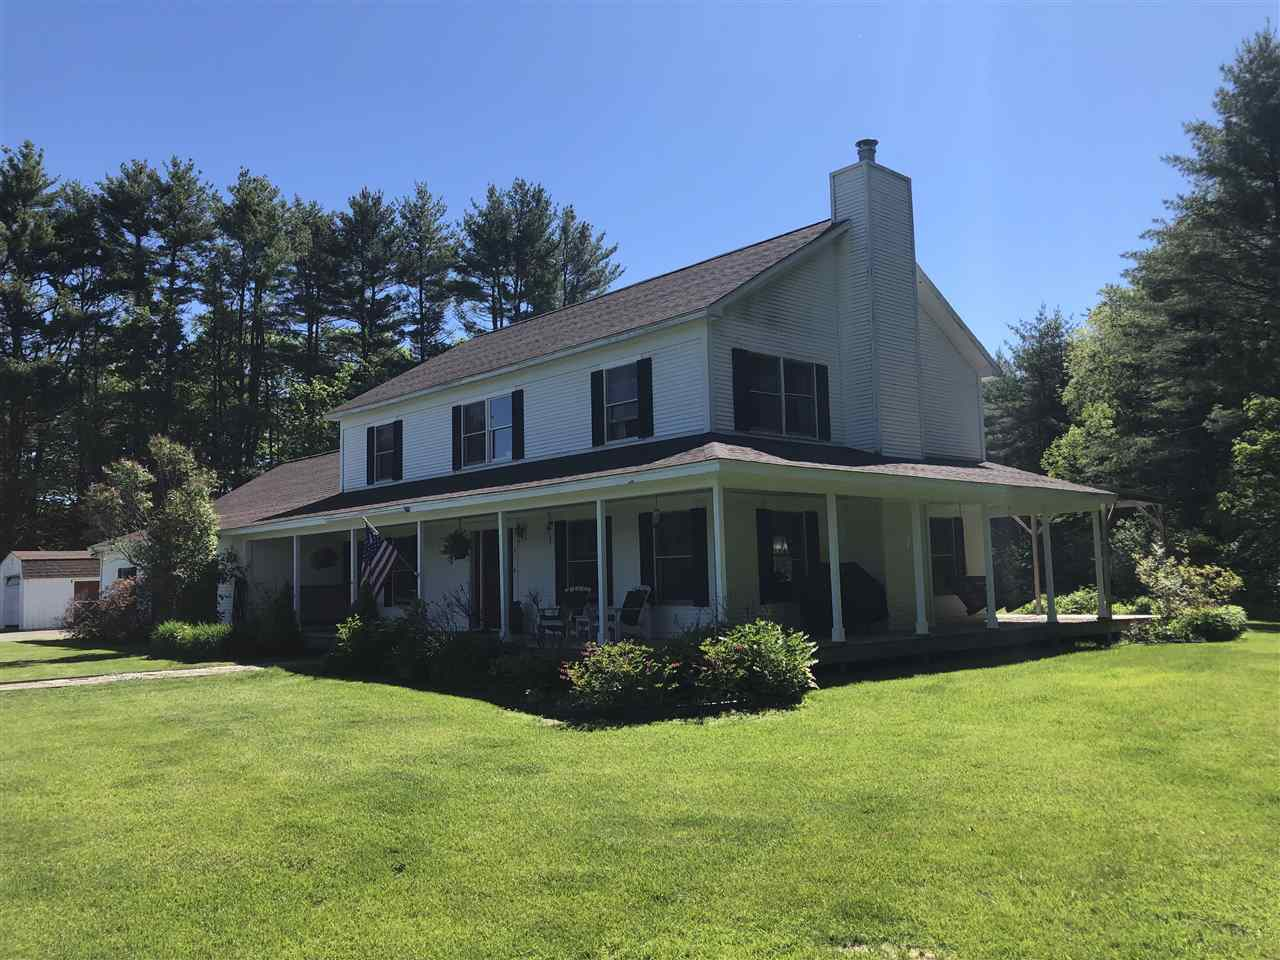 MLS 4725367: 74 Butternut, Norwich VT